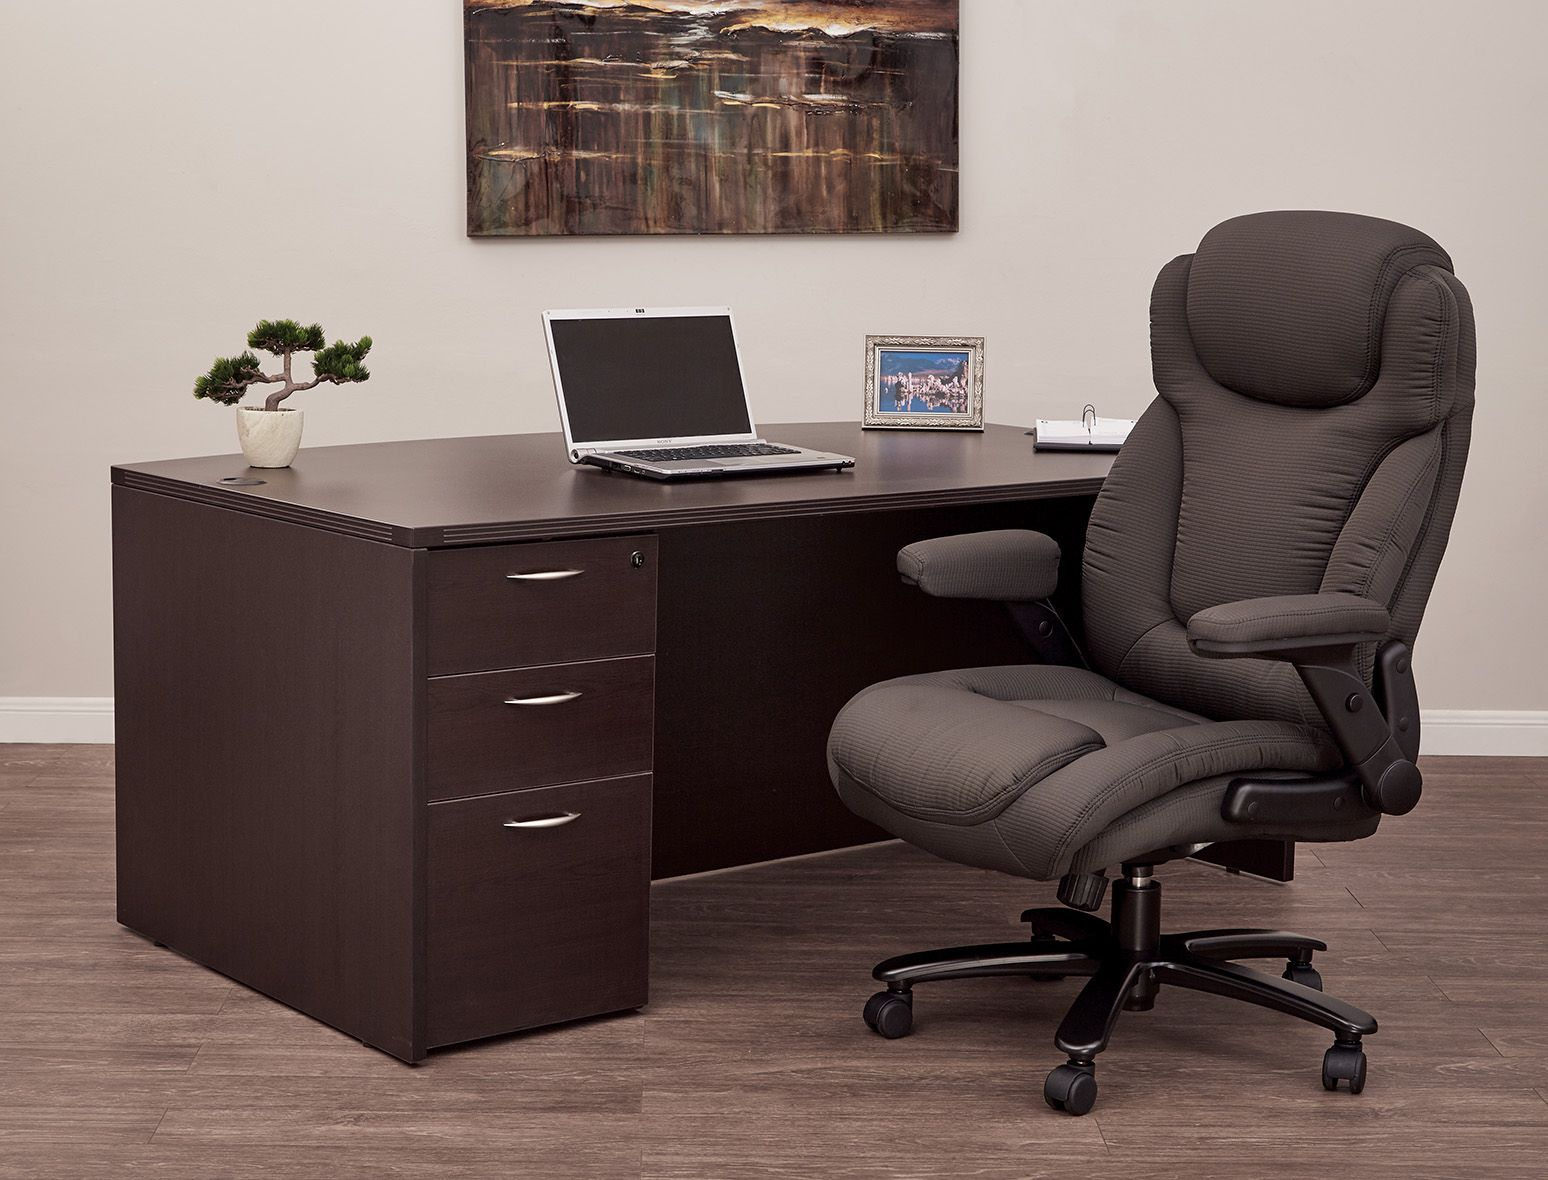 Get An Extra Level Of Comfort Support With Tall Office Chairs Comfyseating Andtall Officechairs